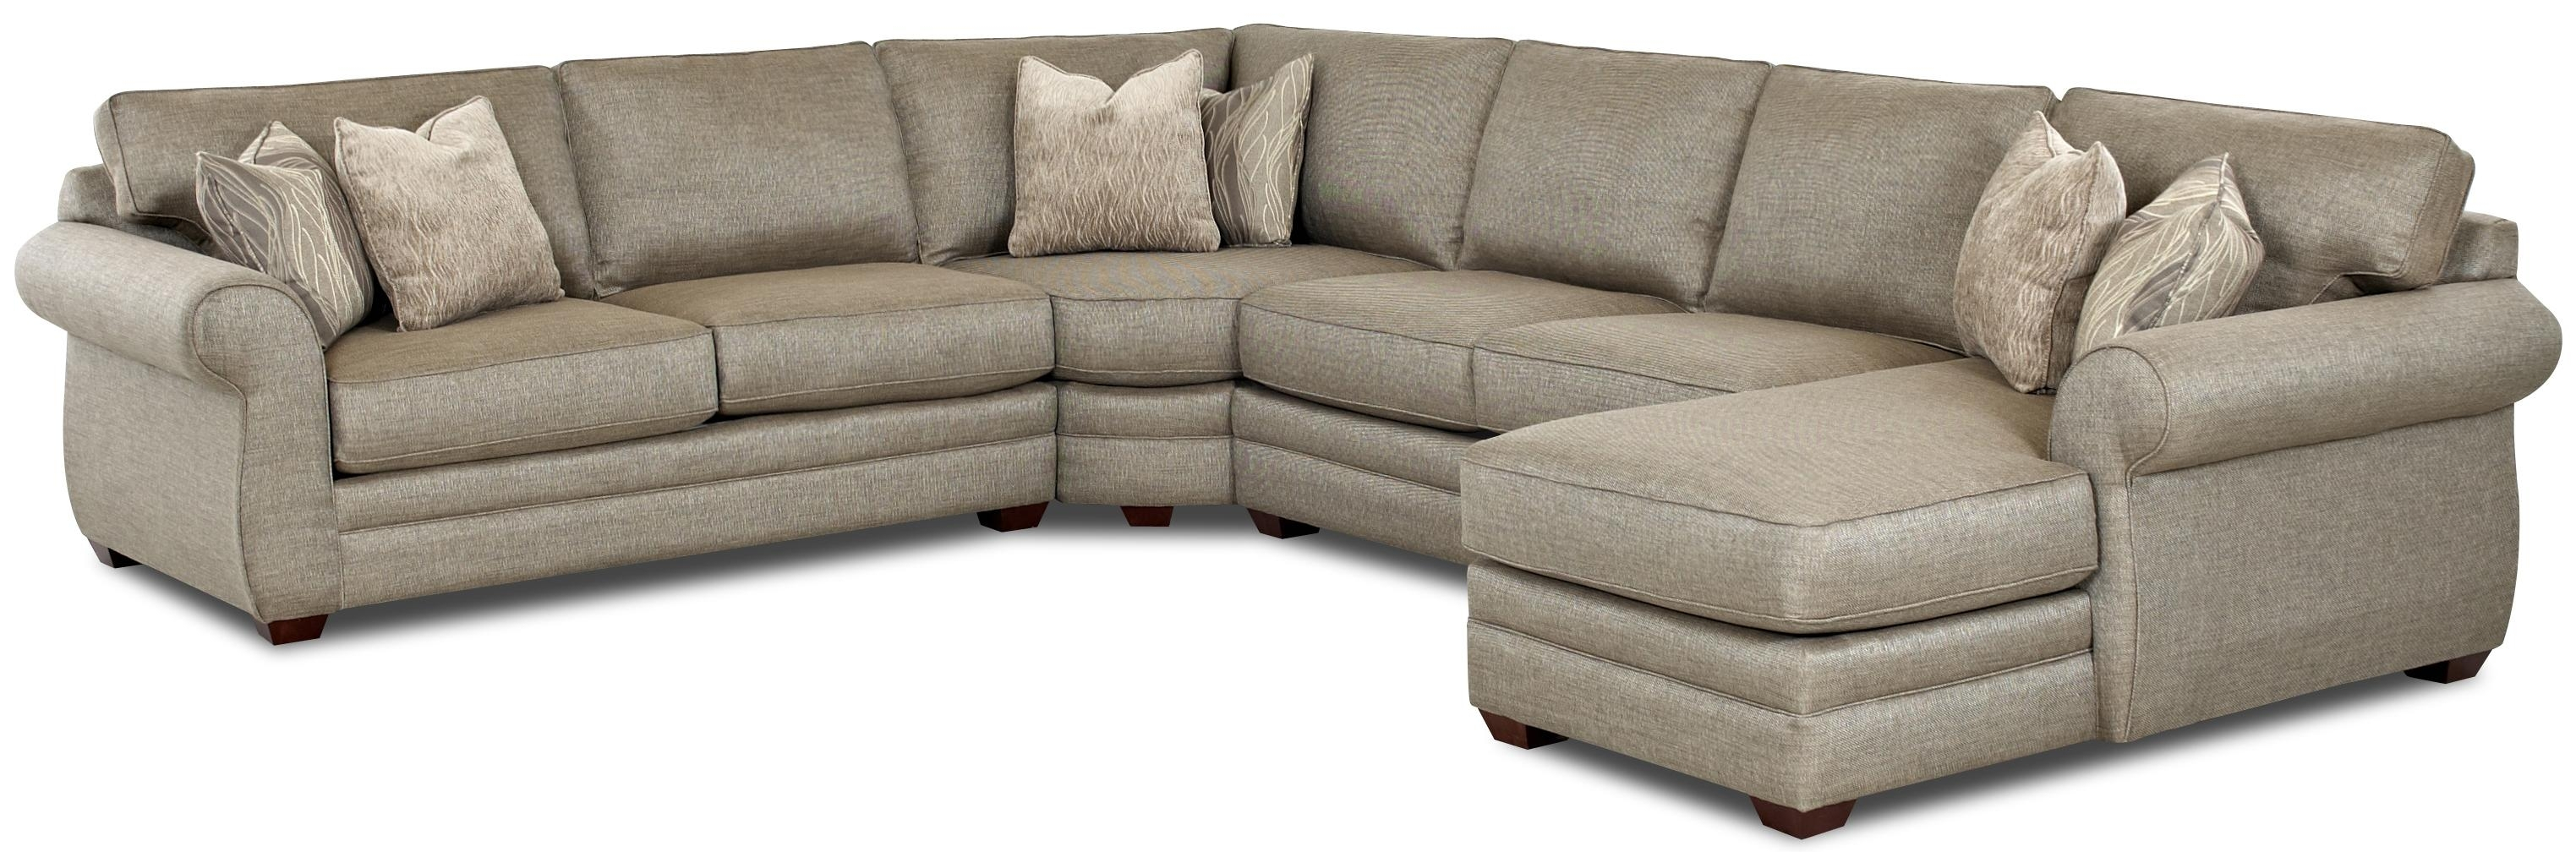 Sectional Sofas Pittsburgh | Www (Image 4 of 10)